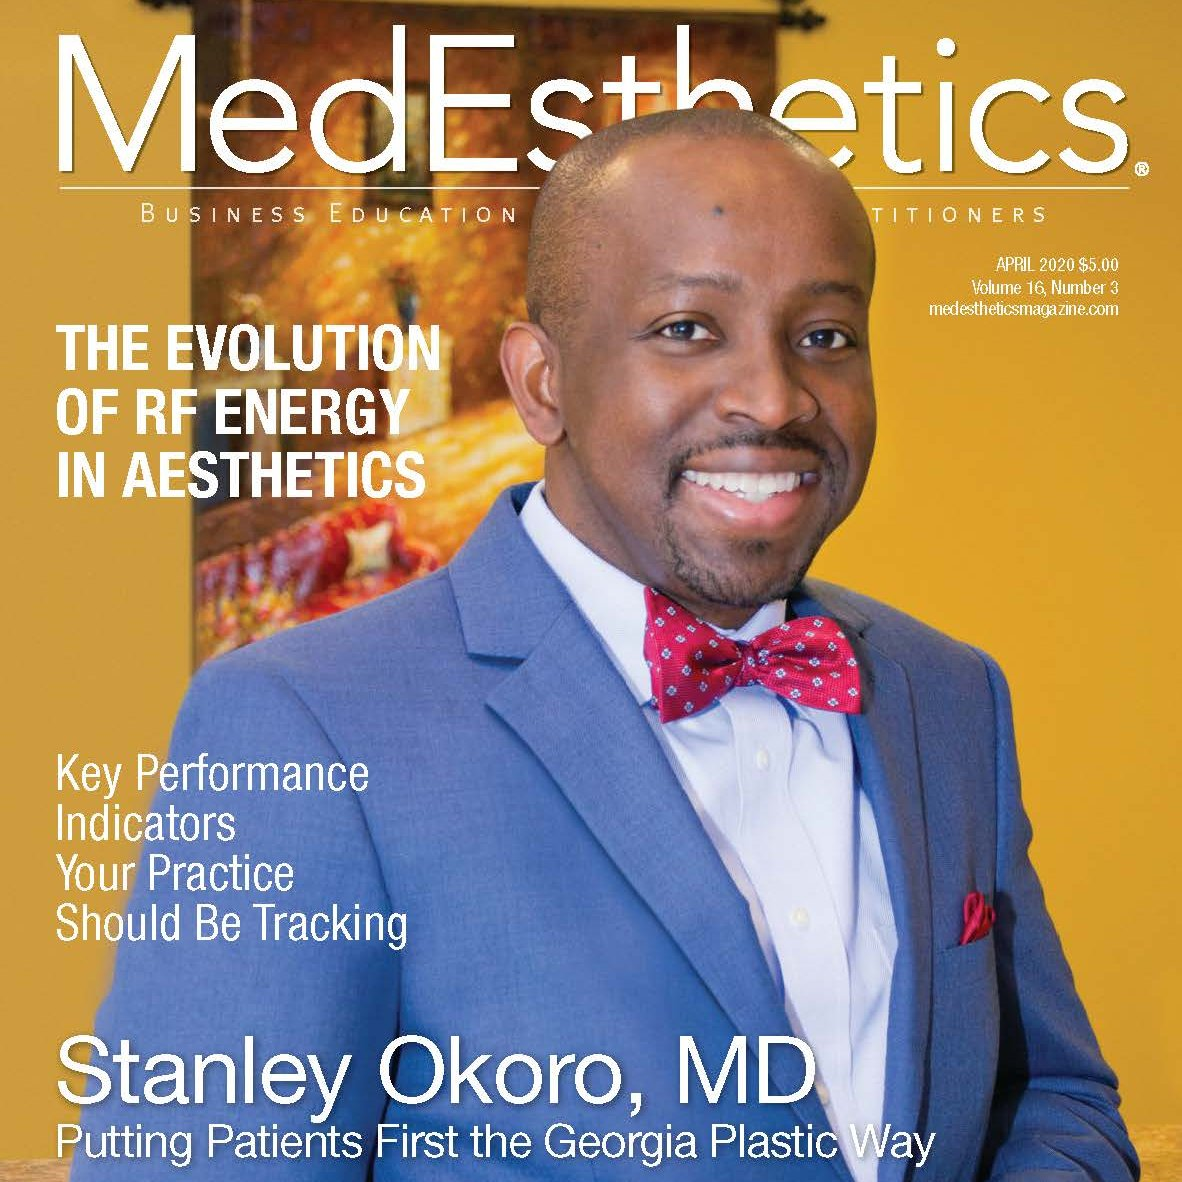 Our April issue, featuring Stanley Okoro, MD, is online now! https://t.co/KJnOQjJEQ5 https://t.co/Zau8C7KXsu